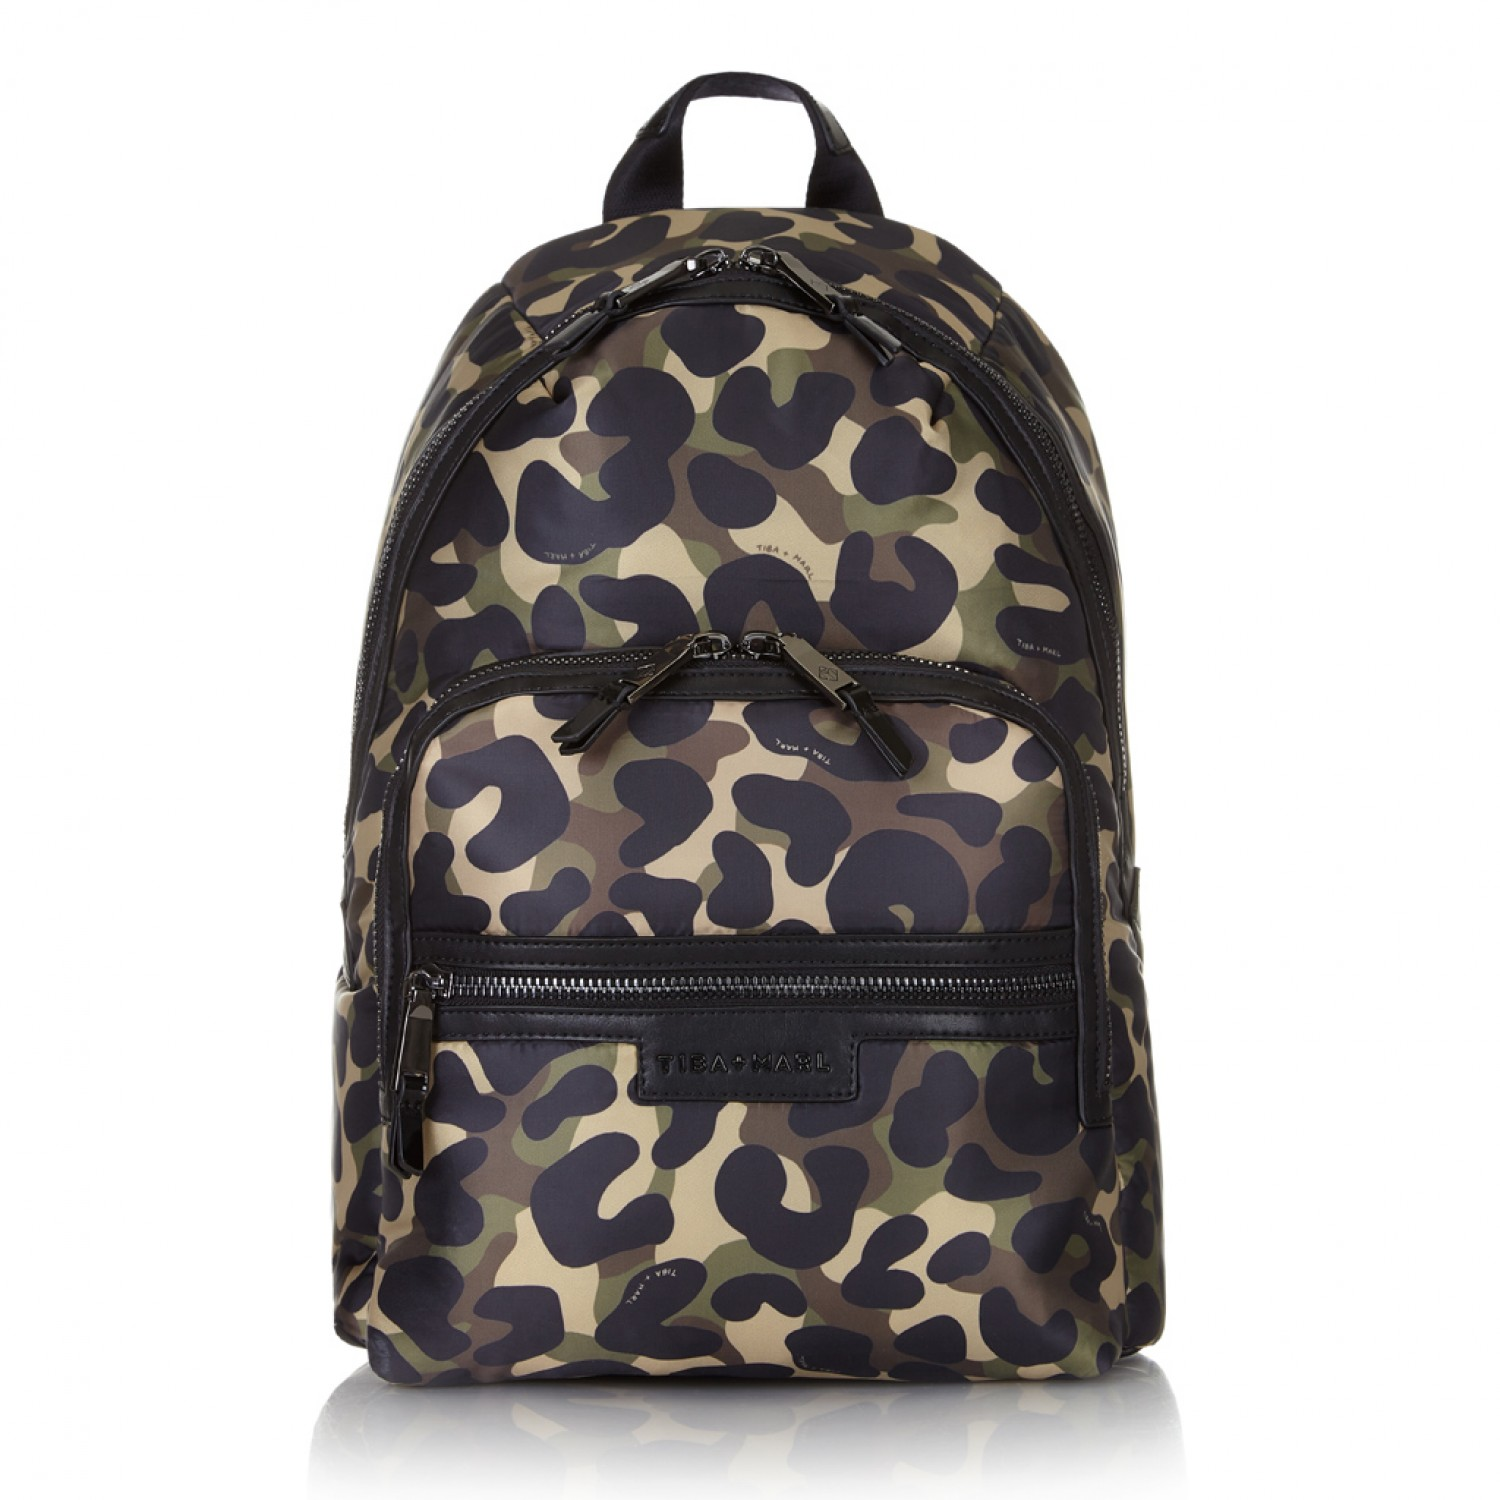 CAMO ELWOOD BACKPACK CHANGING BAG